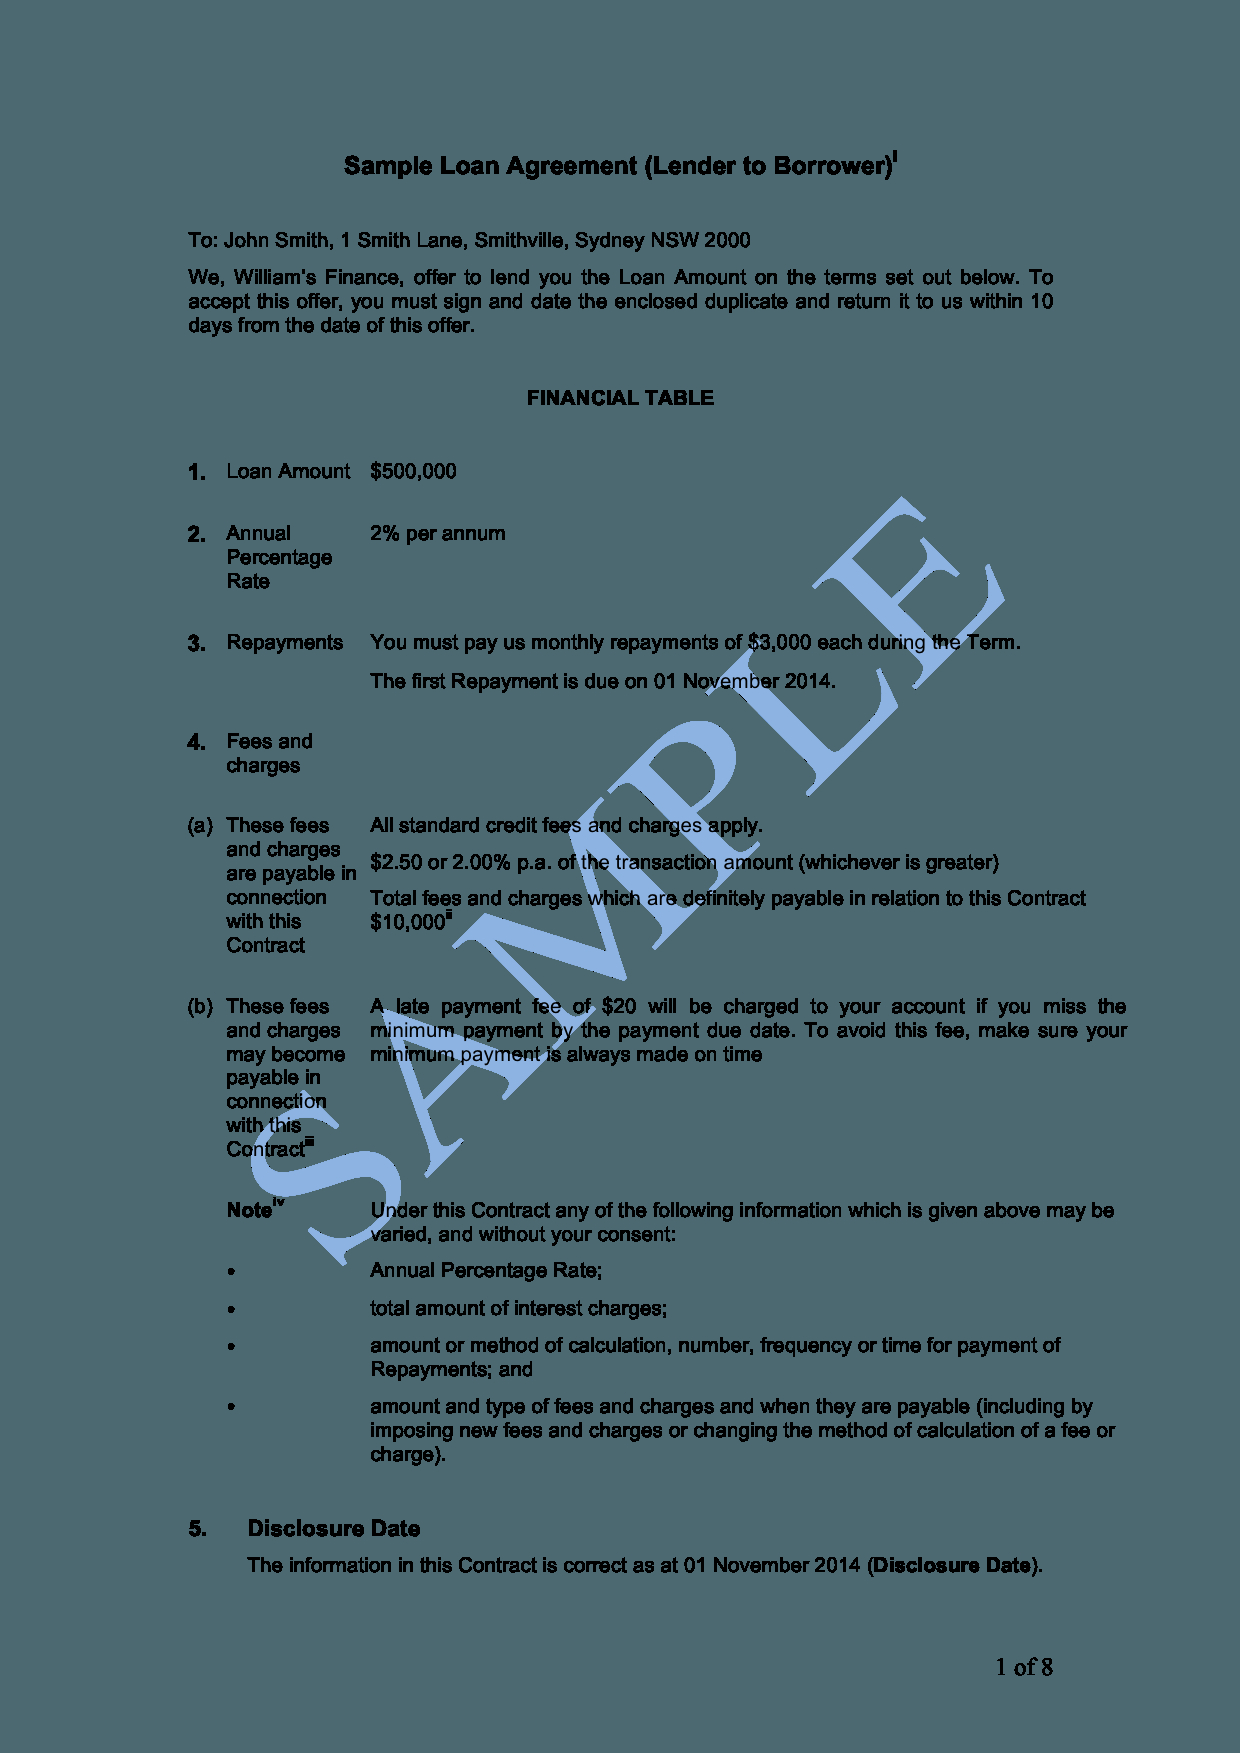 How To Write A Loan Agreement Loan Agreement Lender To Borrower Sample Lawpath